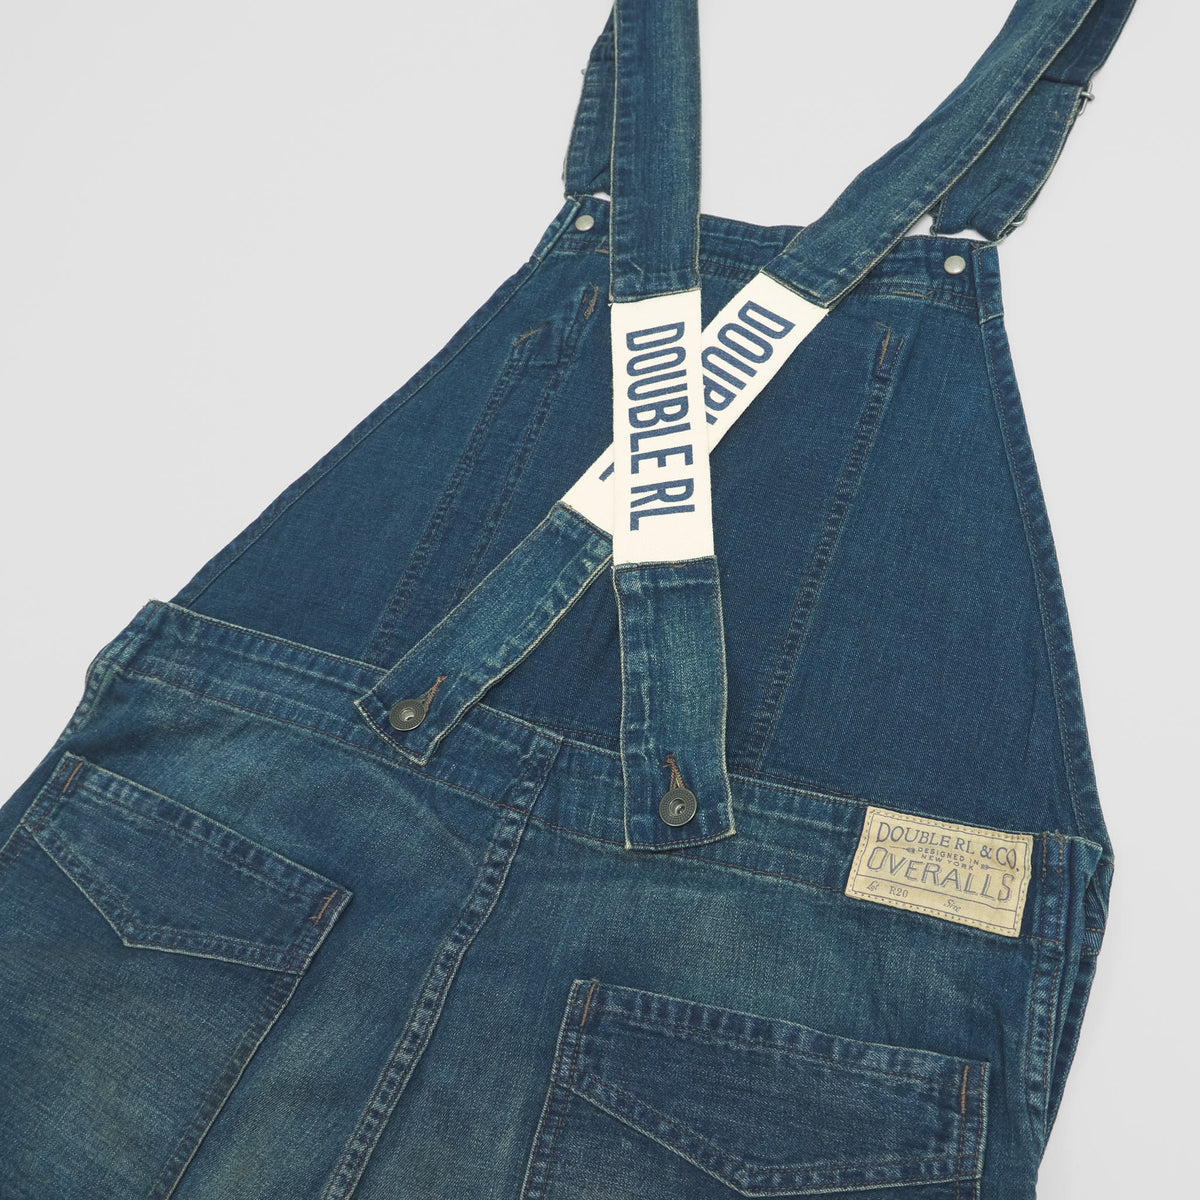 Double RL Heavy Washed Bib Overall